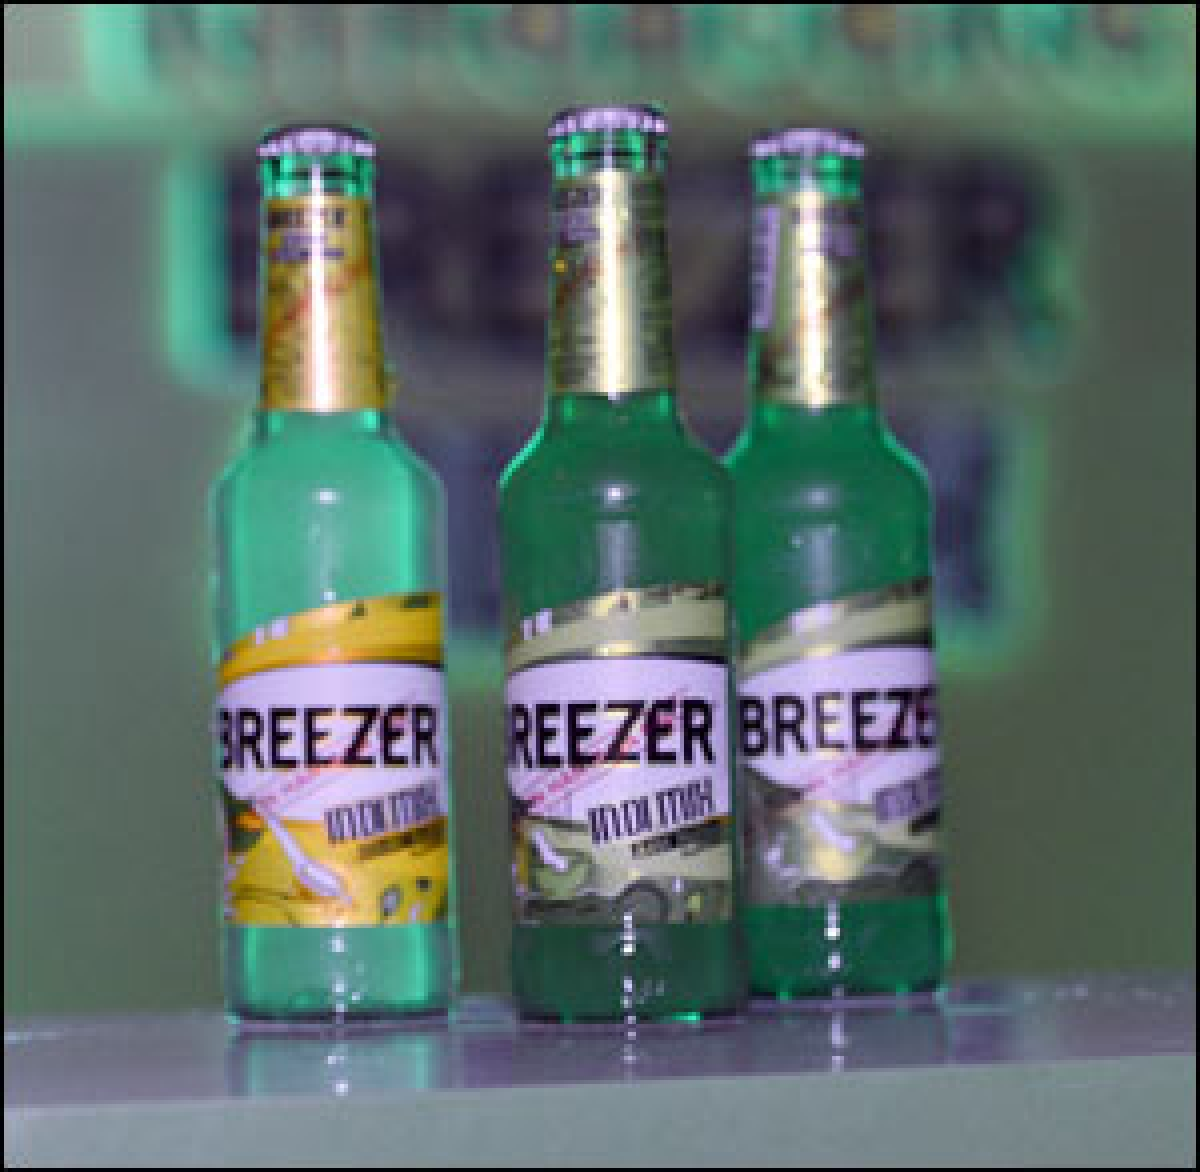 Bacardi: Breezer's native touch